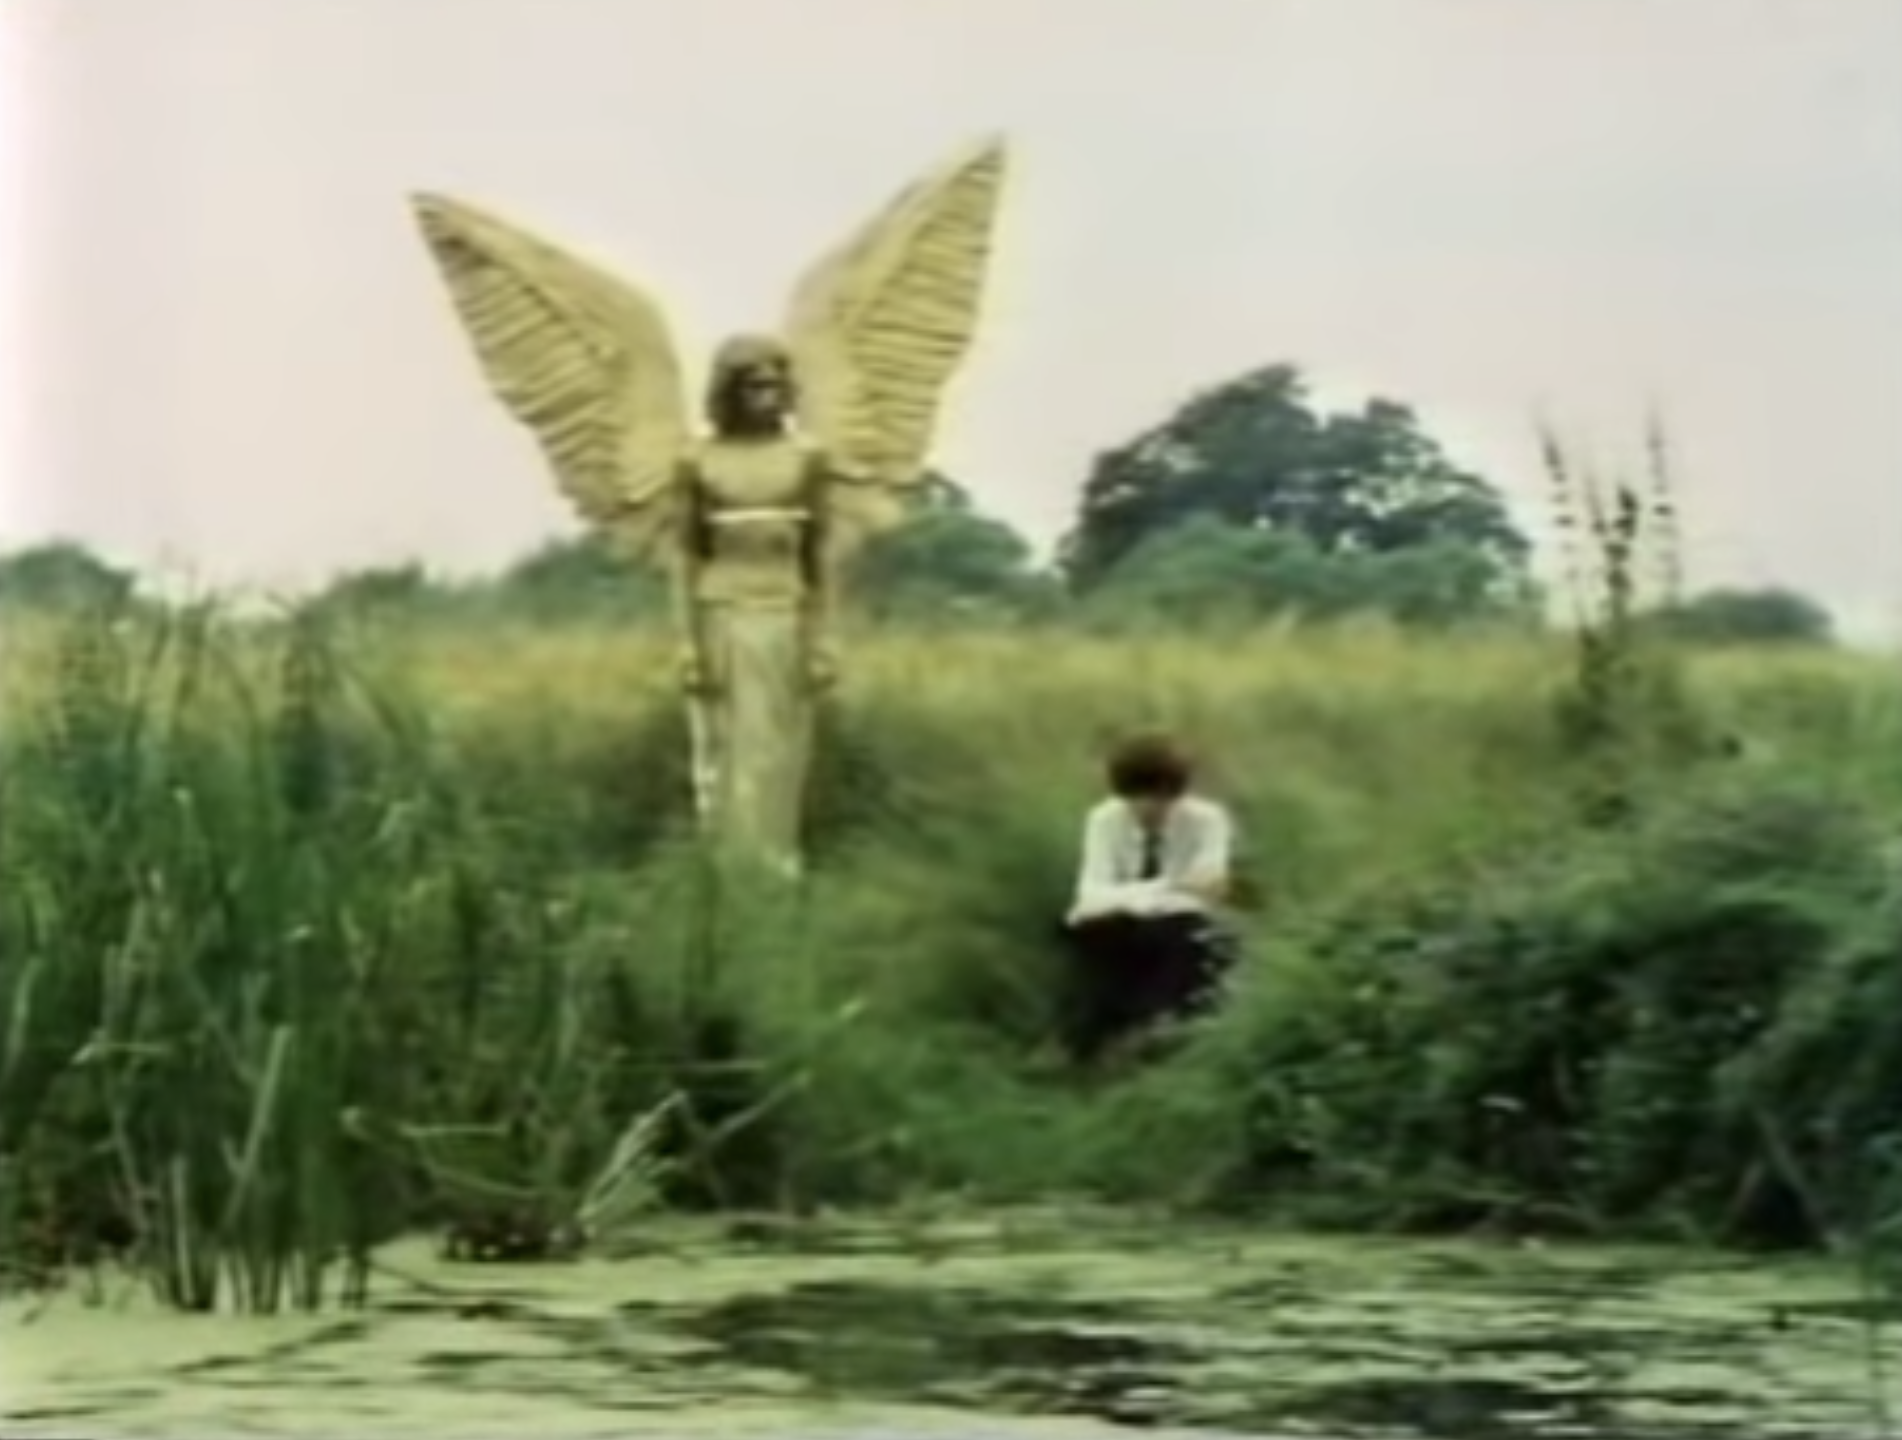 A photo of a boy looking into the water of a fen, not seeing the angel standing near him, watching him.